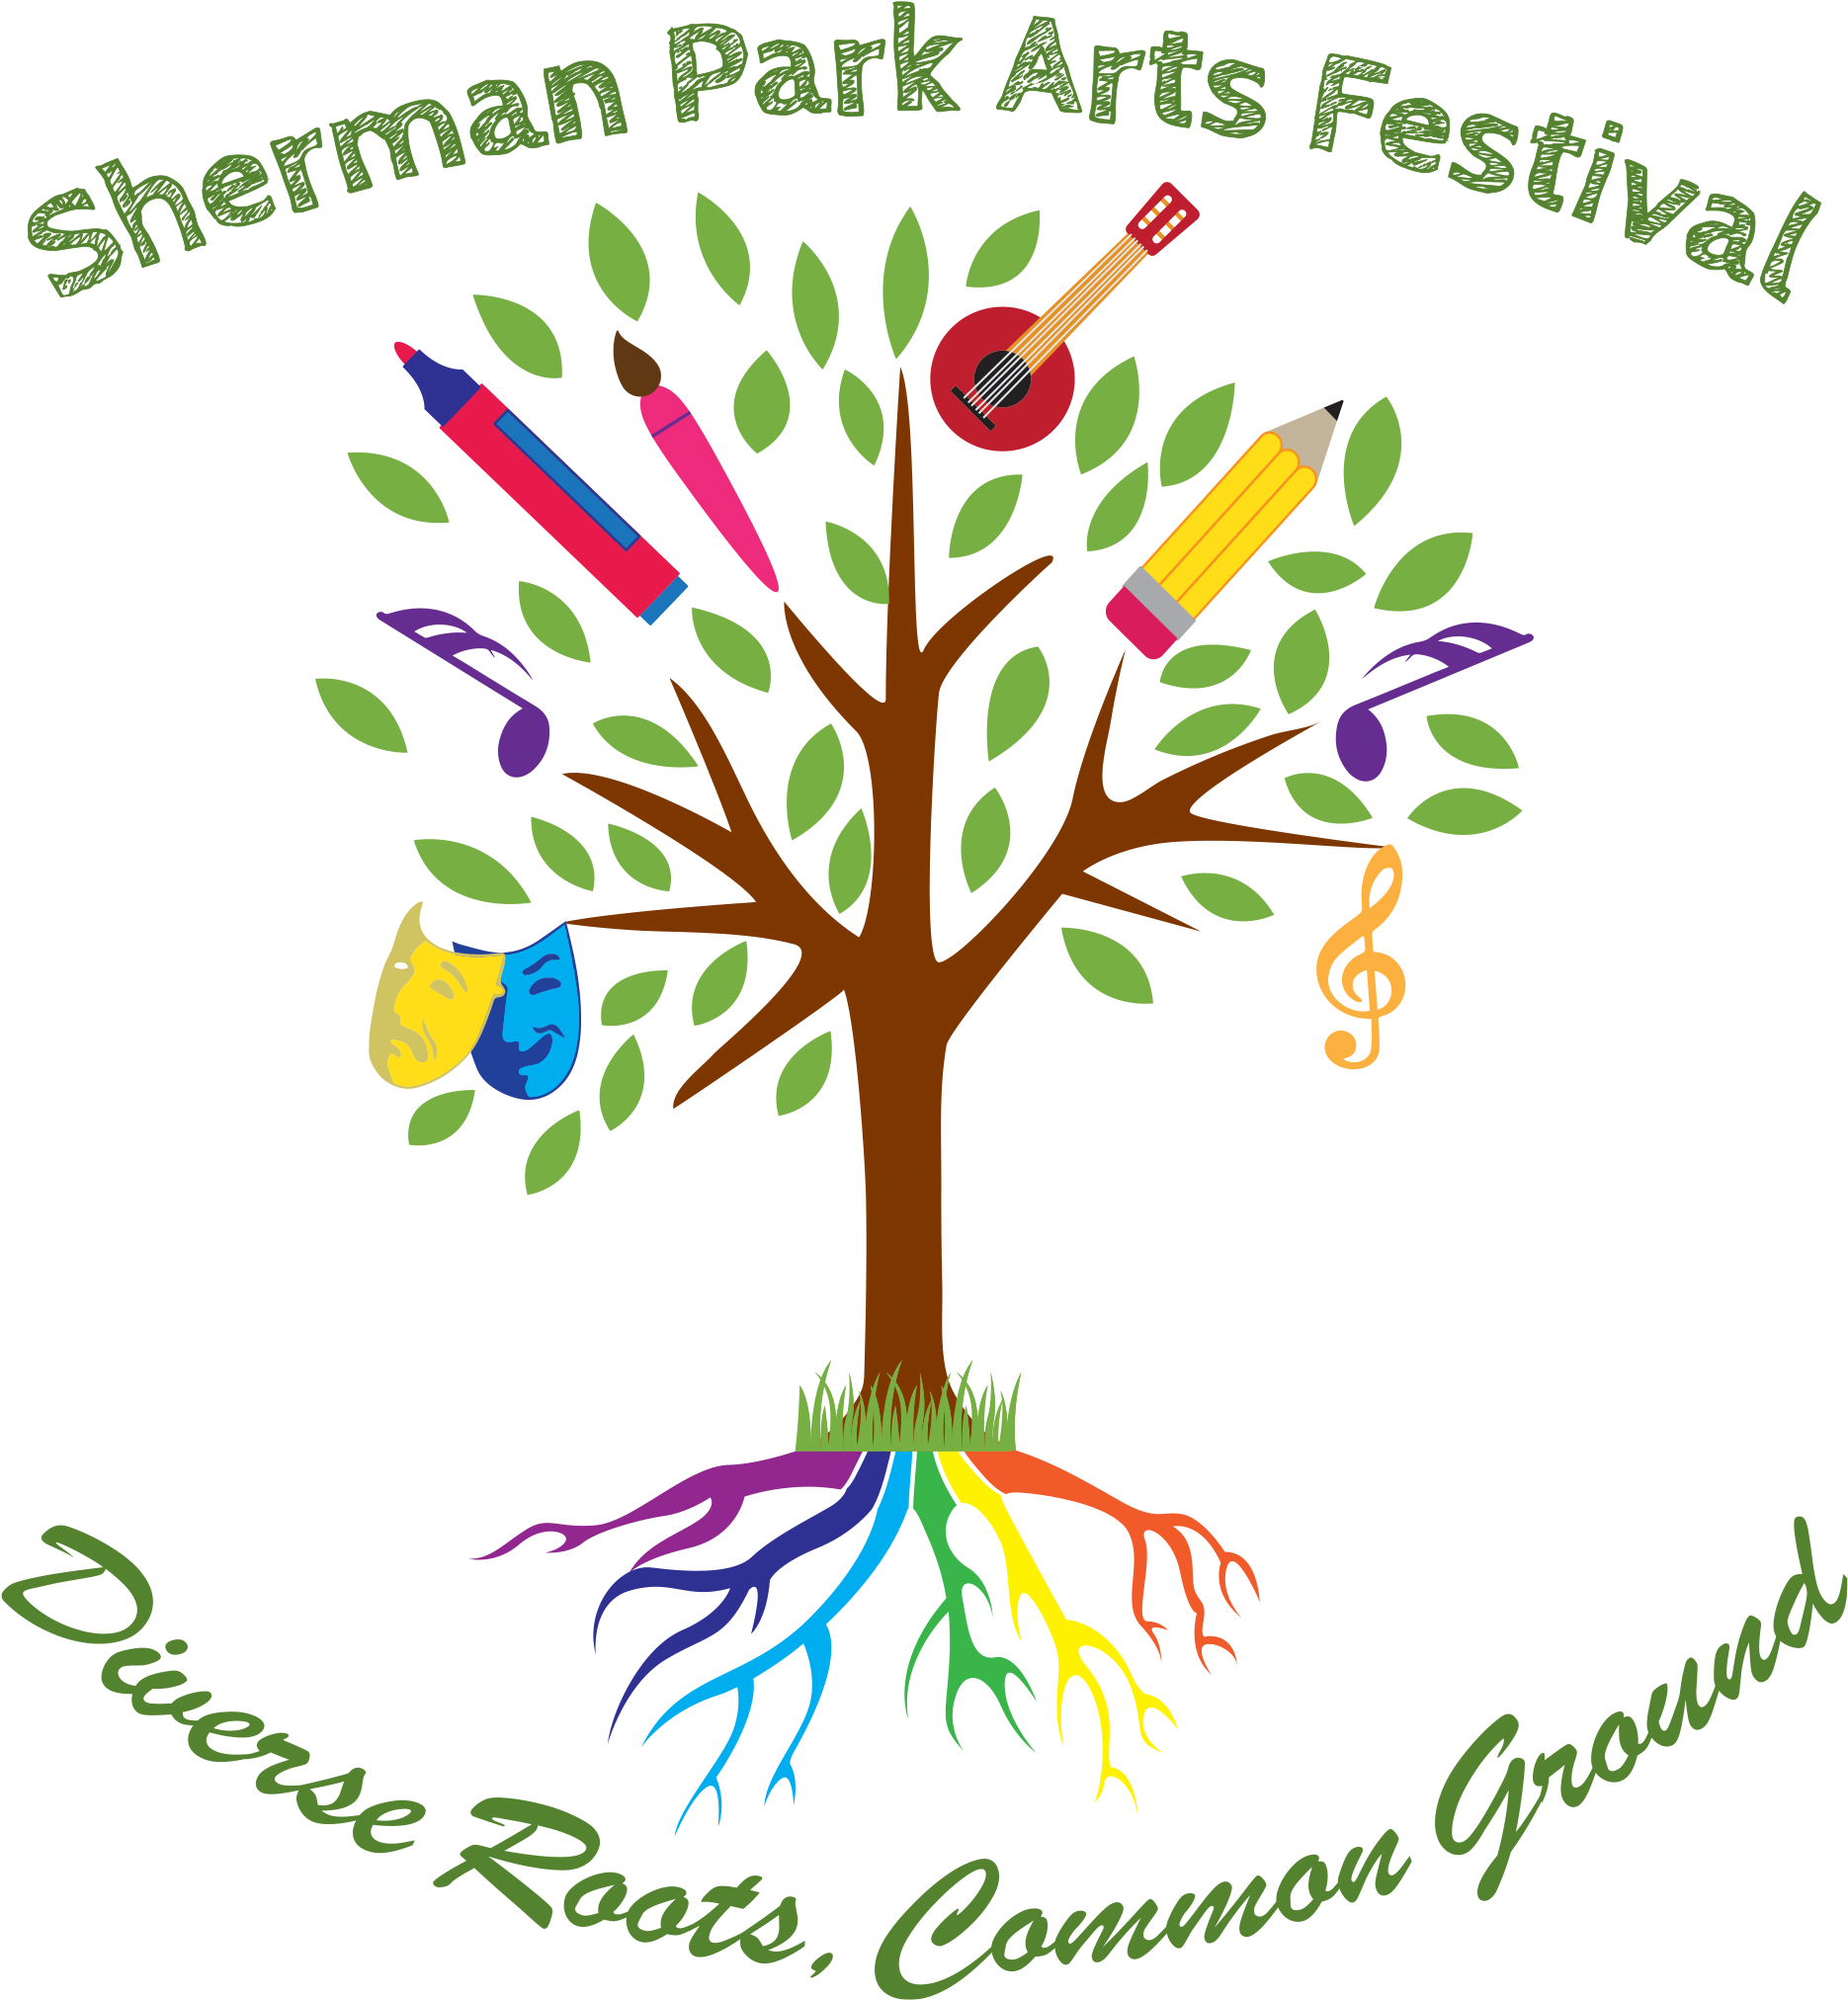 Transparent family tree with people clipart - The Sherman Park Arts Festival Community Arts Day Is - Illustration